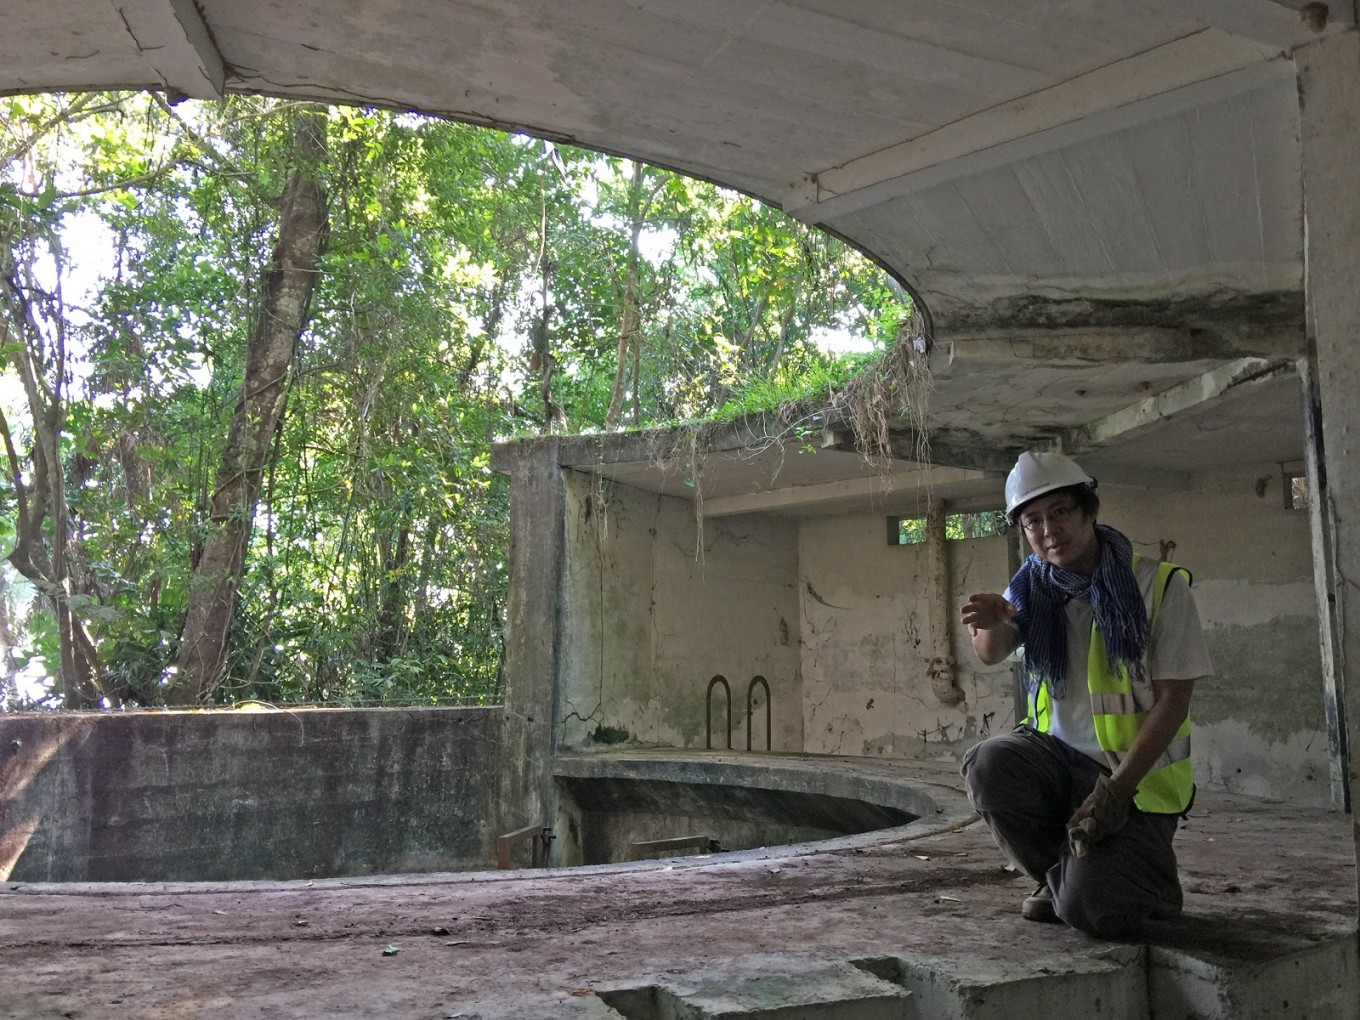 Singapore risks destroying past in race to build: Top archaeologist